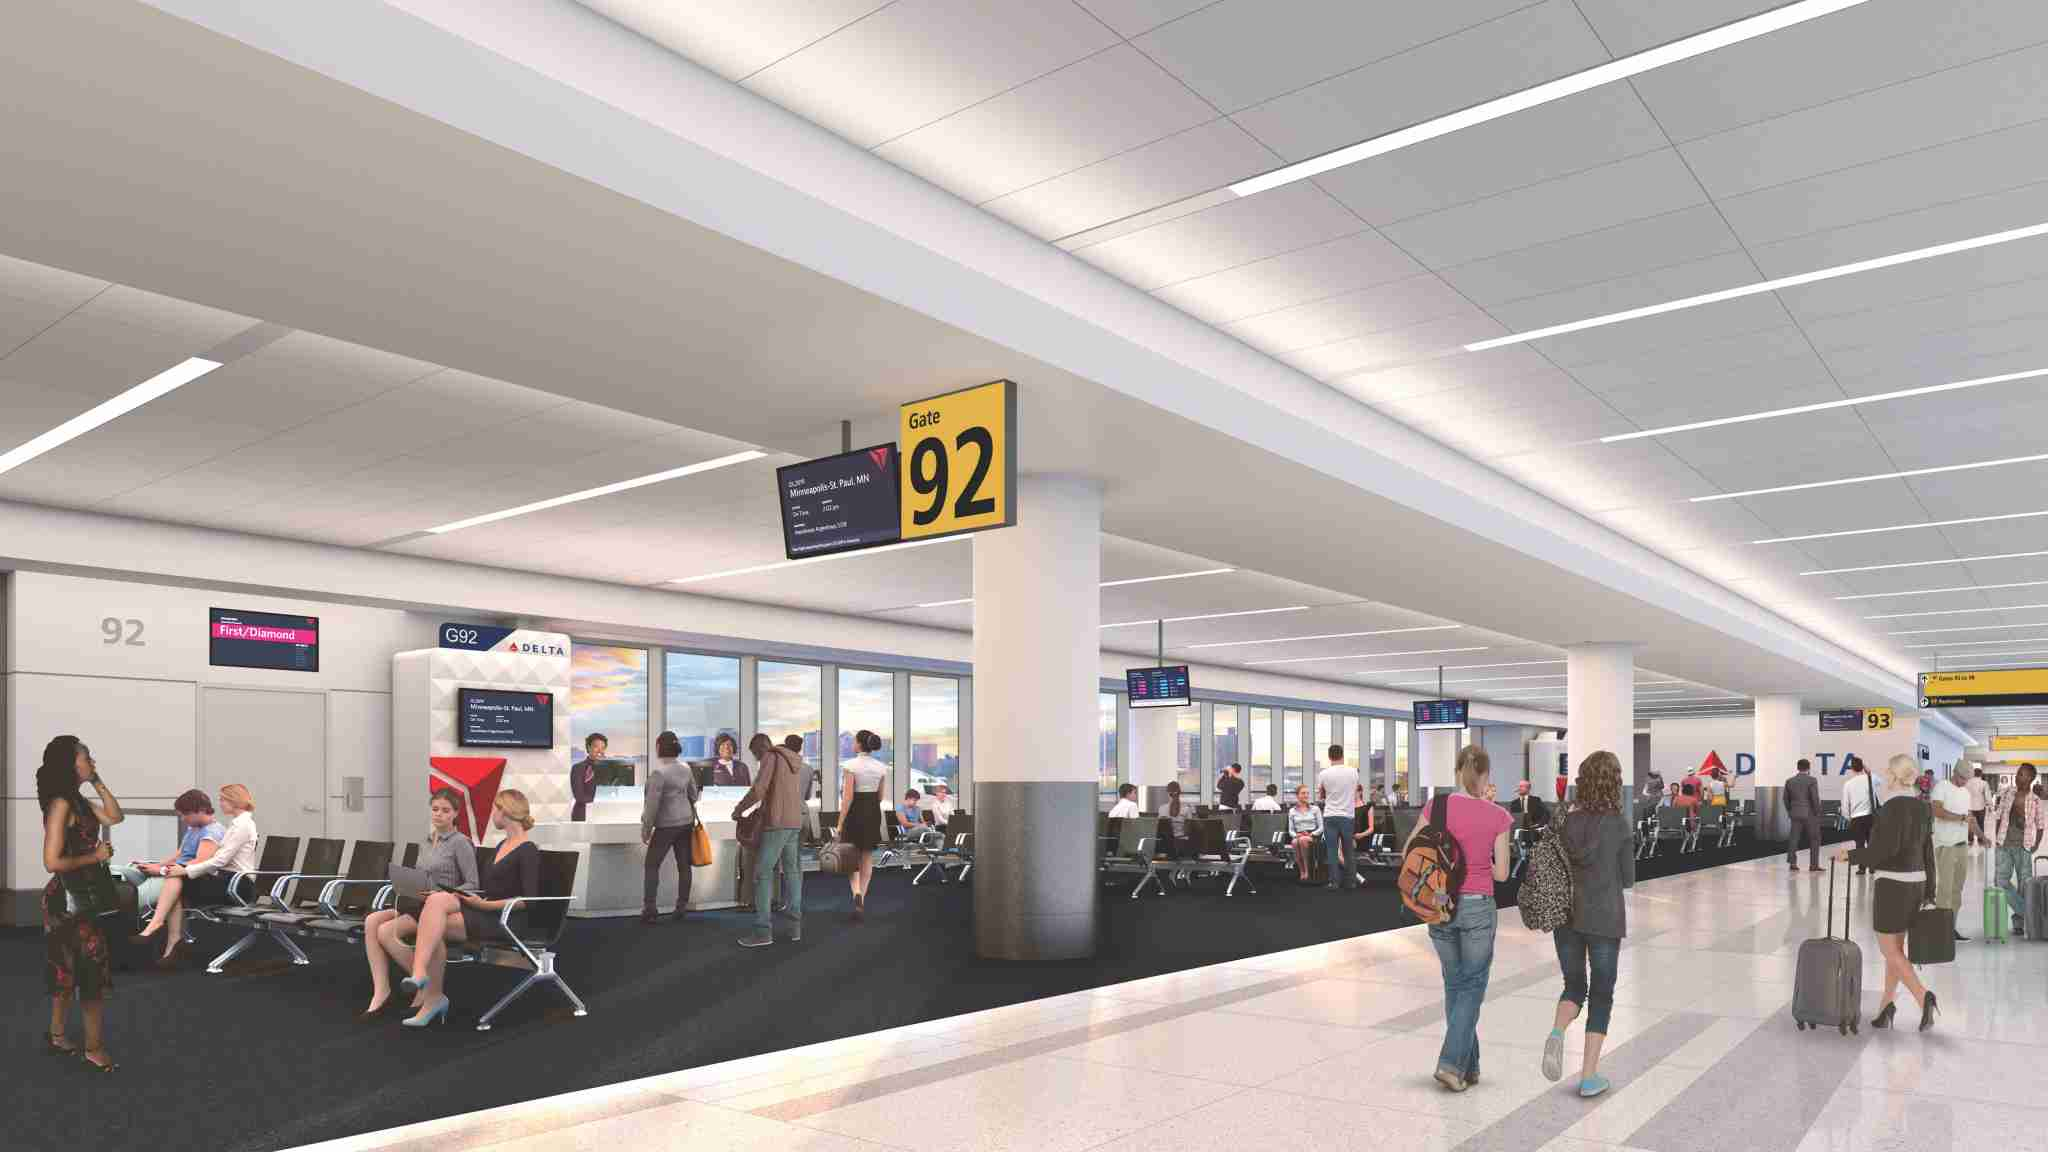 Rendering of the new gate area in concourse G at New York LaGuardia. Courtesy of Delta Air Lines.